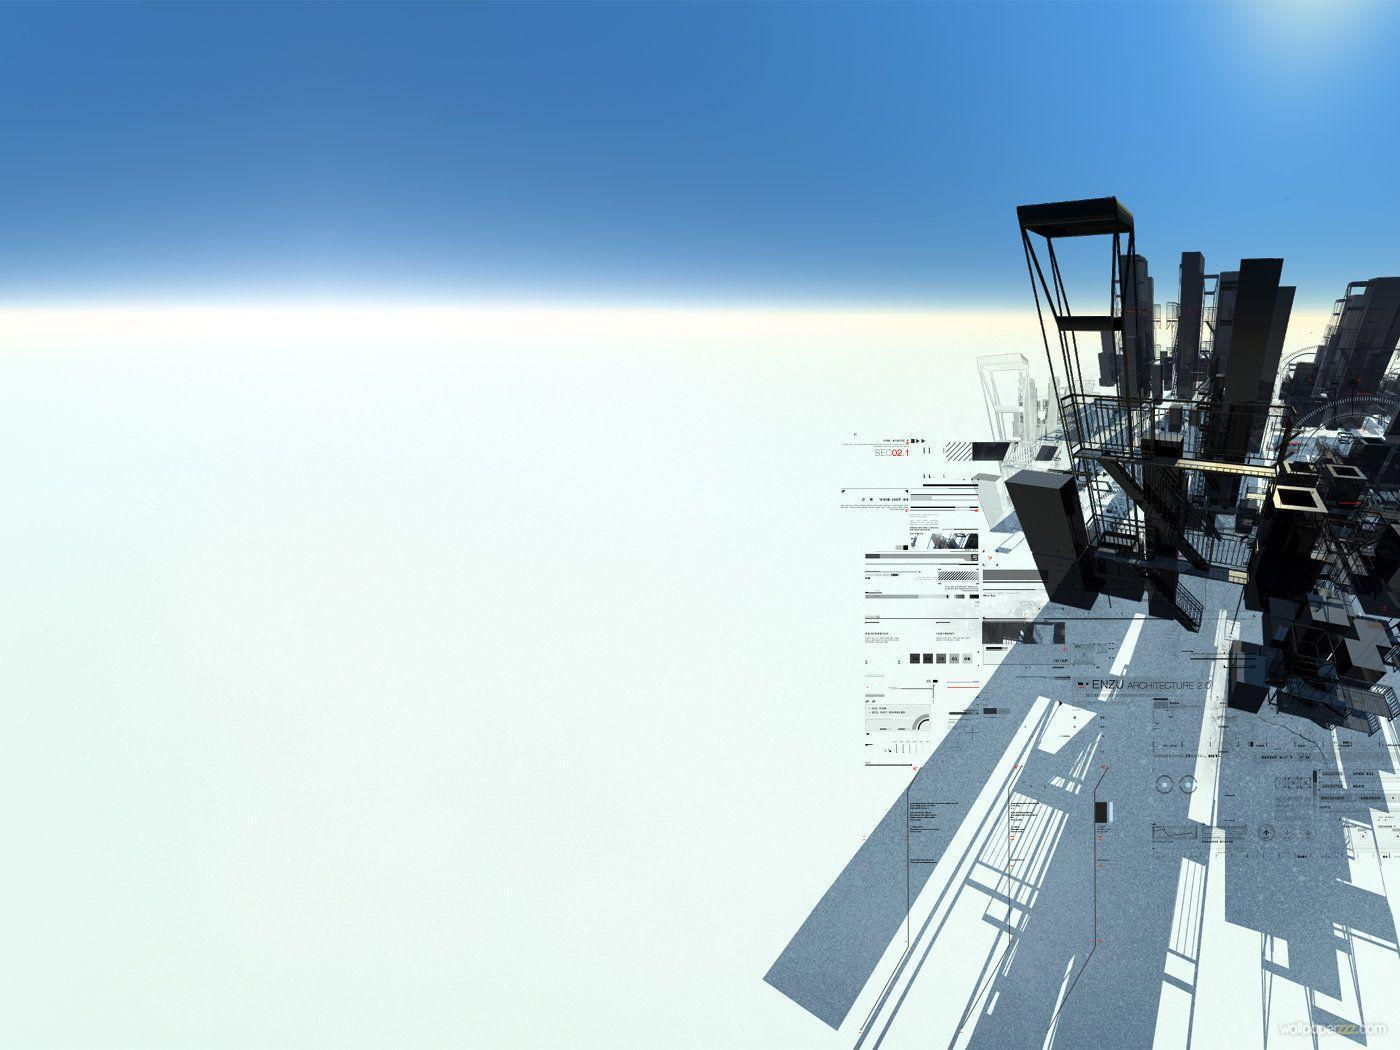 3D Architecture Wallpapers - HD Wallpapers Inn